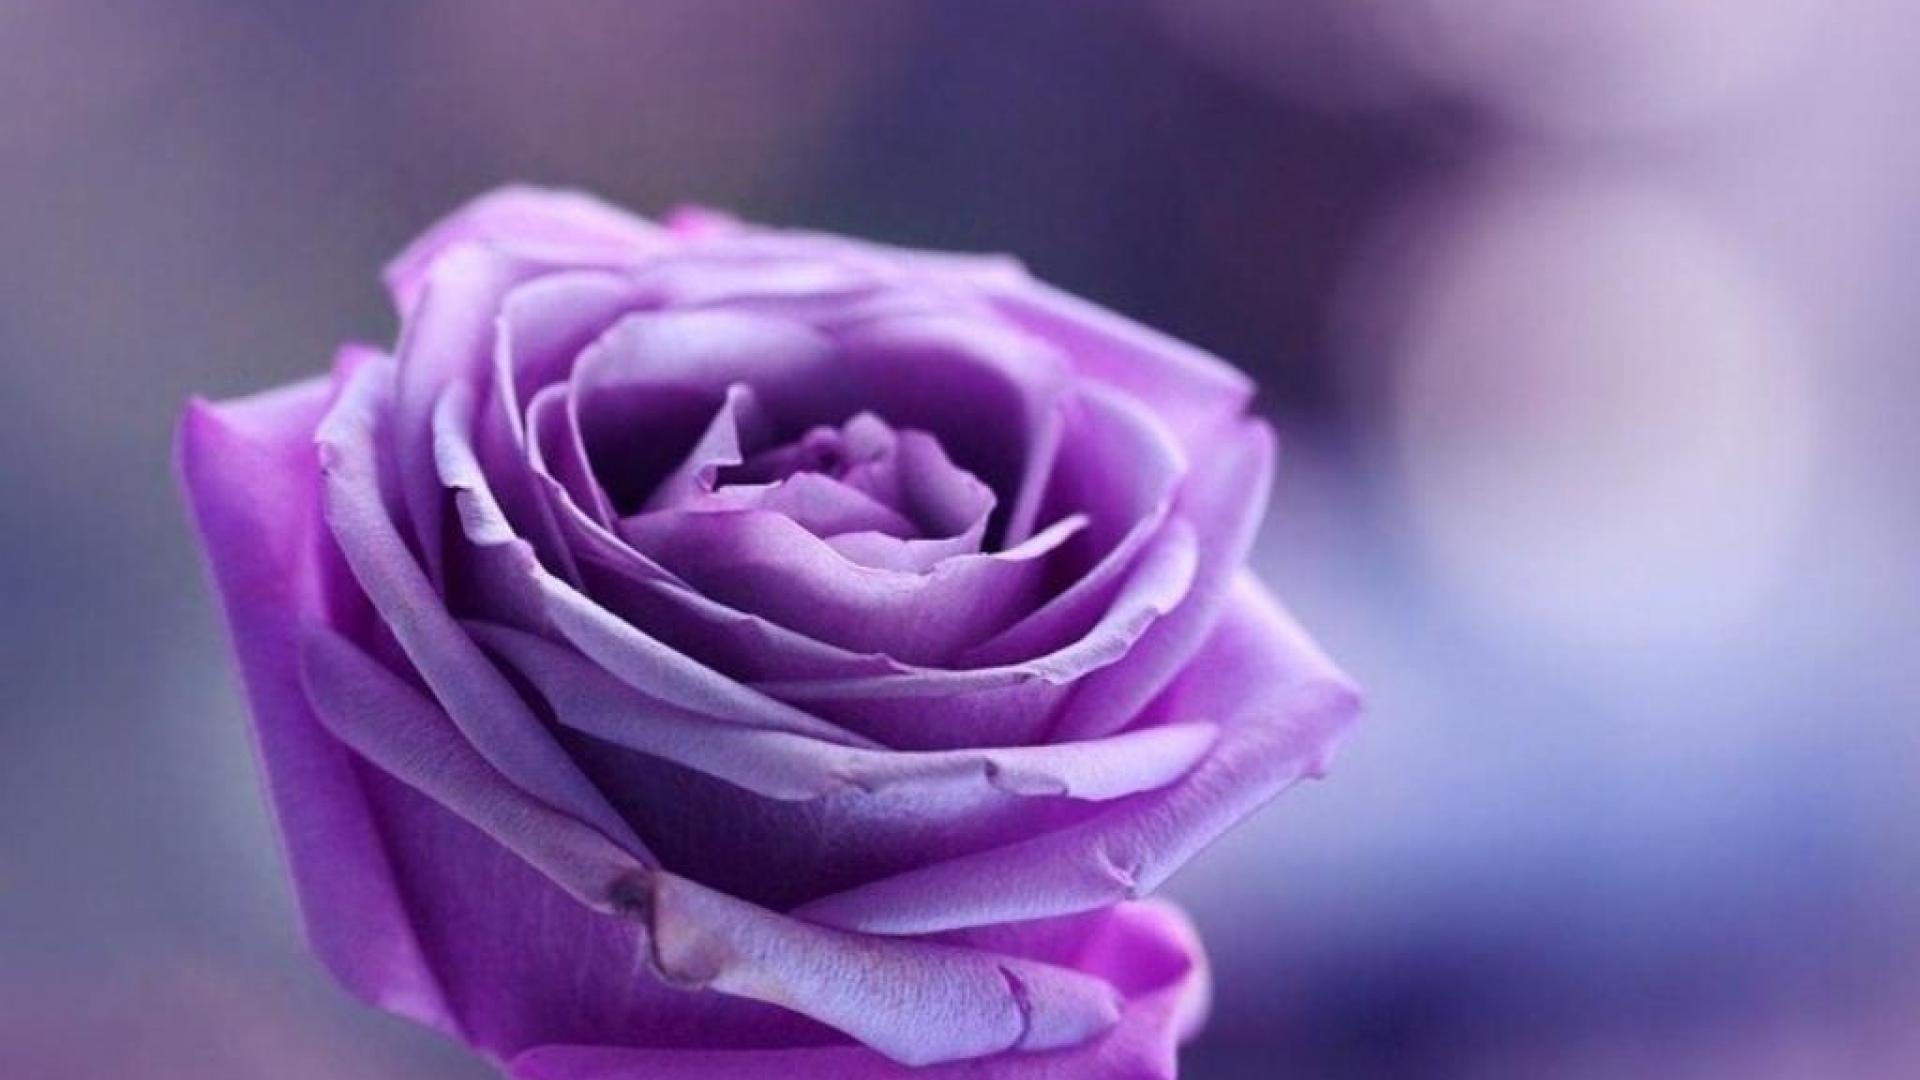 purple roses background wallpaper high definition high